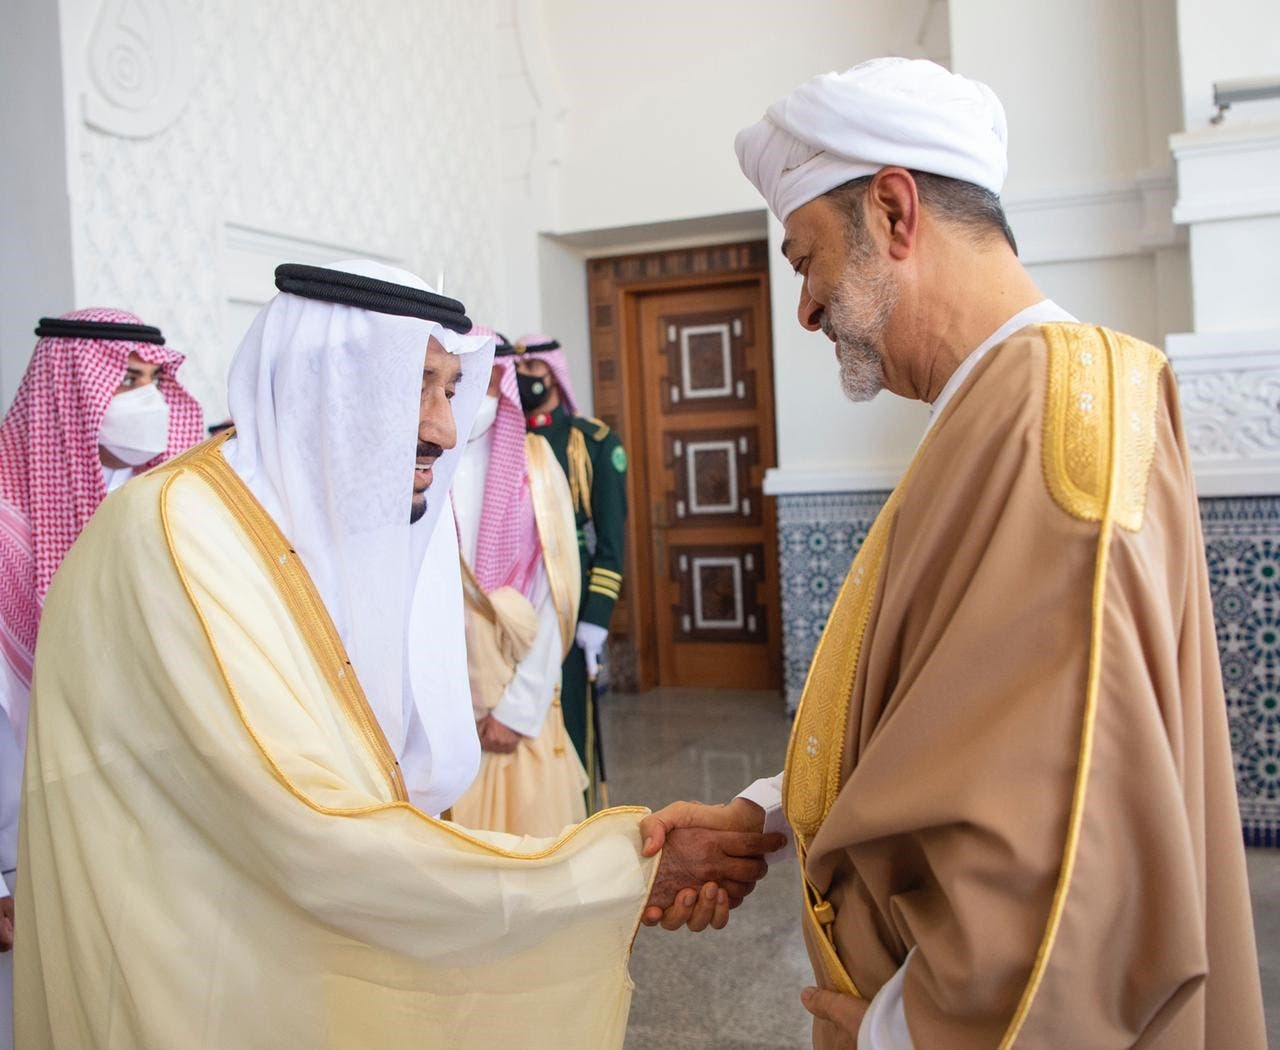 Saudi Arabia's King Salman bin Abdulaziz receives Oman's Sultan Haitham bin Tariq at the Neom Palace for the first official visit between the two leaders since the COVID-19 outbreak began. (SPA)